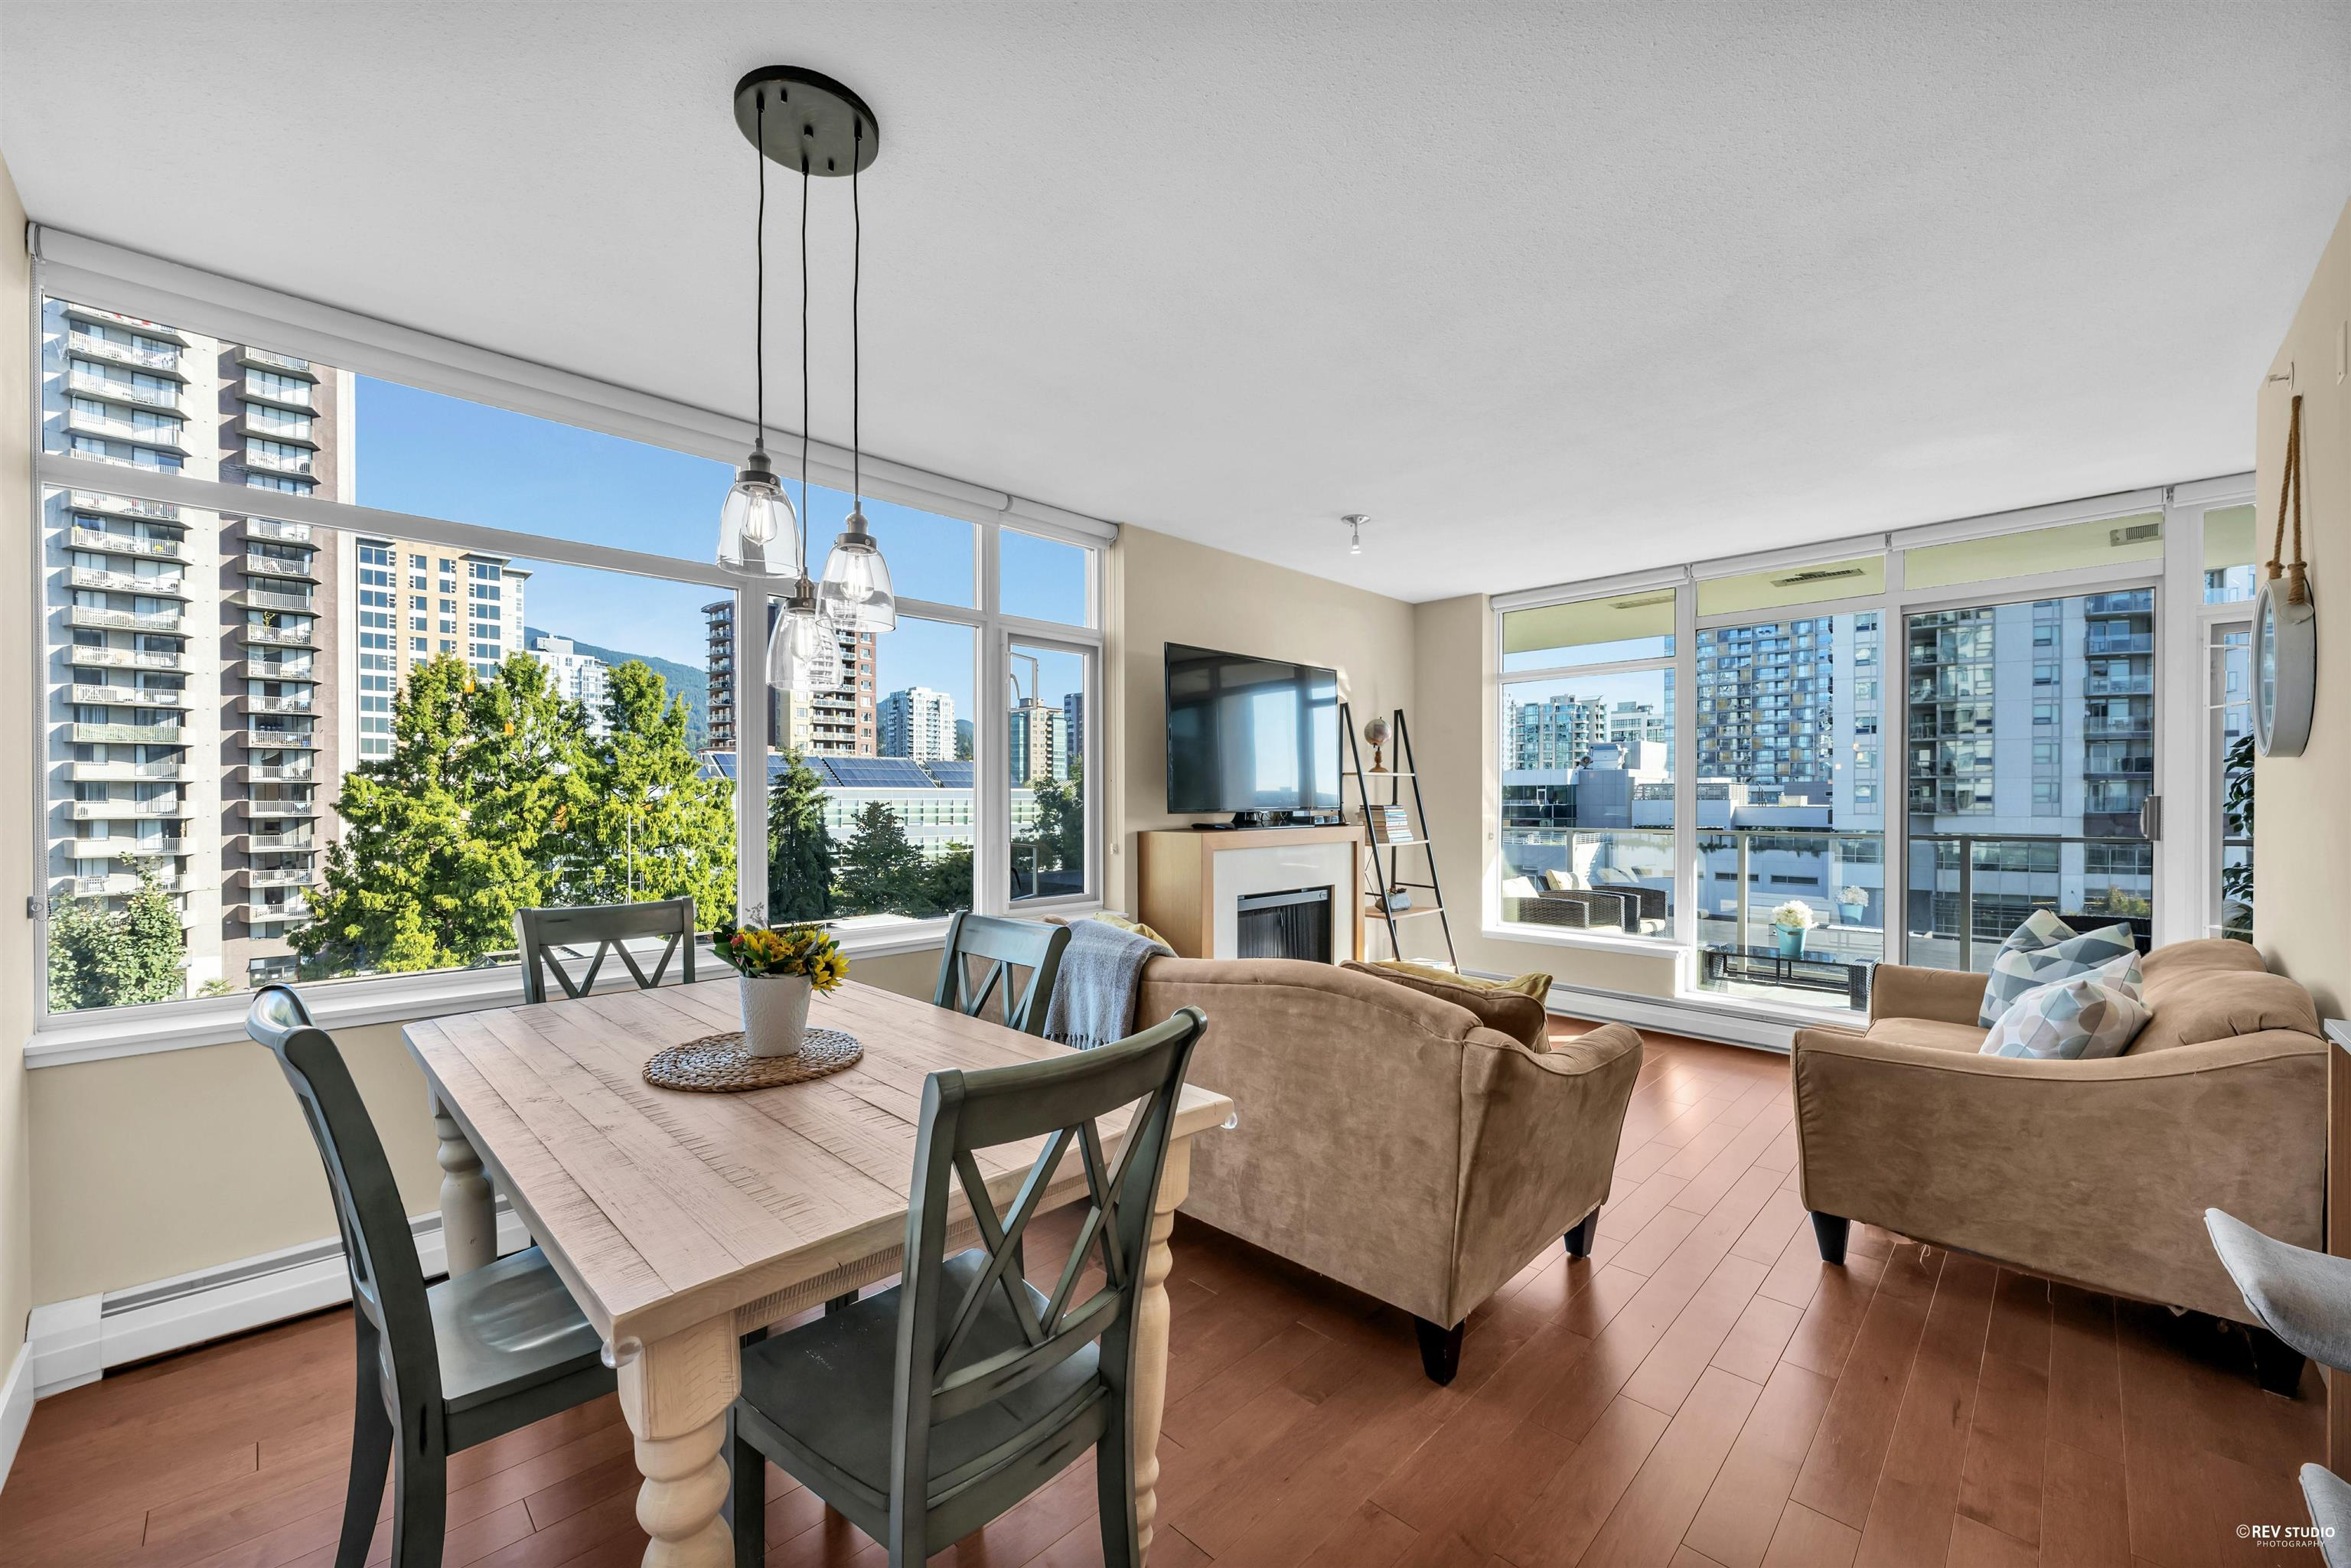 702 158 W 13TH STREET - Central Lonsdale Apartment/Condo for sale, 2 Bedrooms (R2621703) - #1